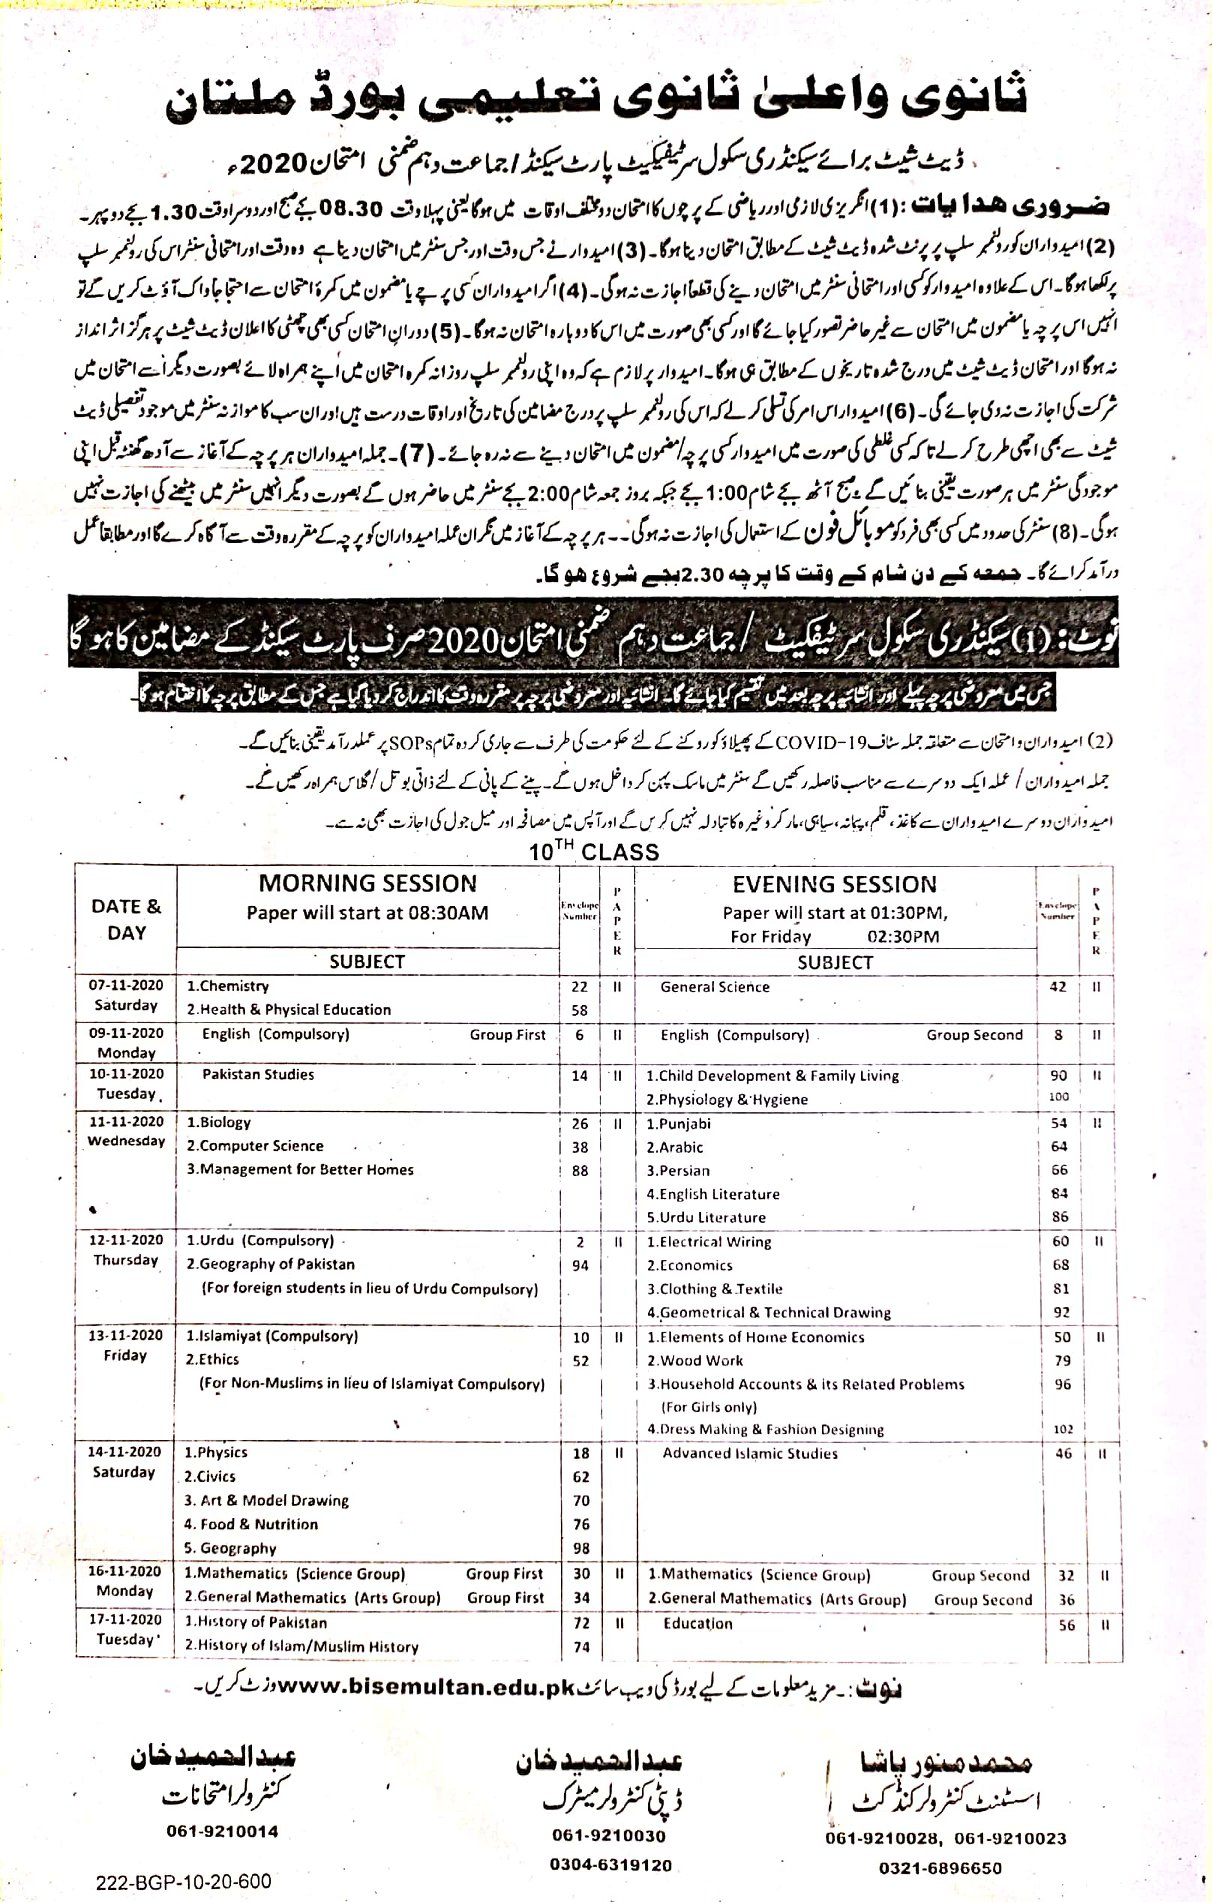 BISE Multan SSC Part-II Date Sheet Supplementary Exam 2020